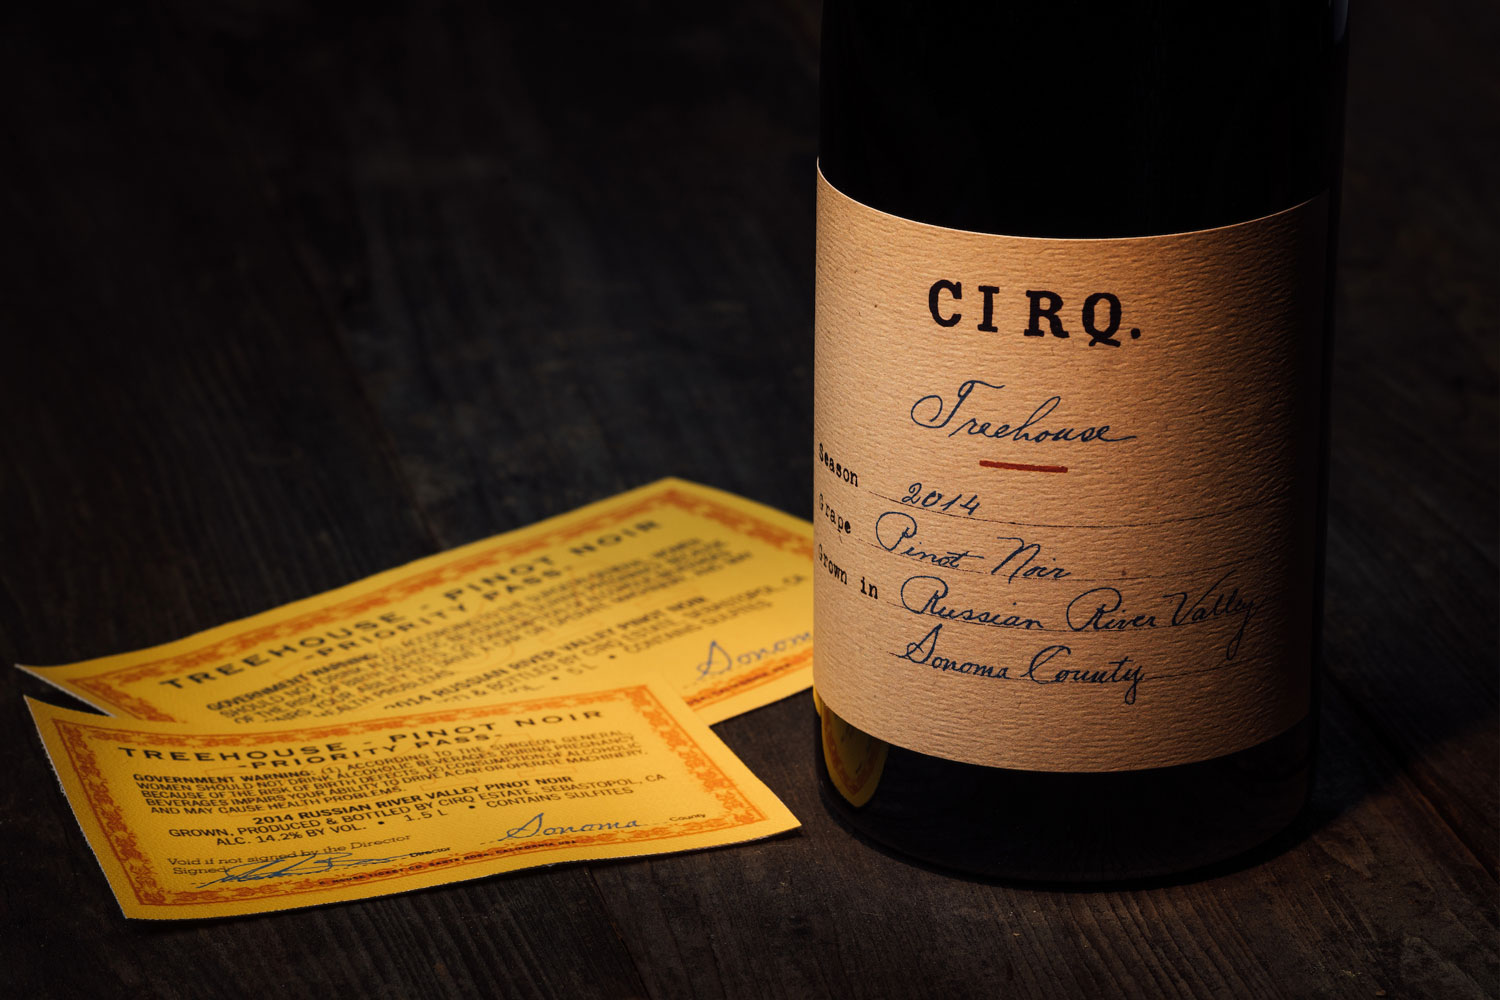 CIRQ - 2014 Treehouse Vineyard Pinot Noir